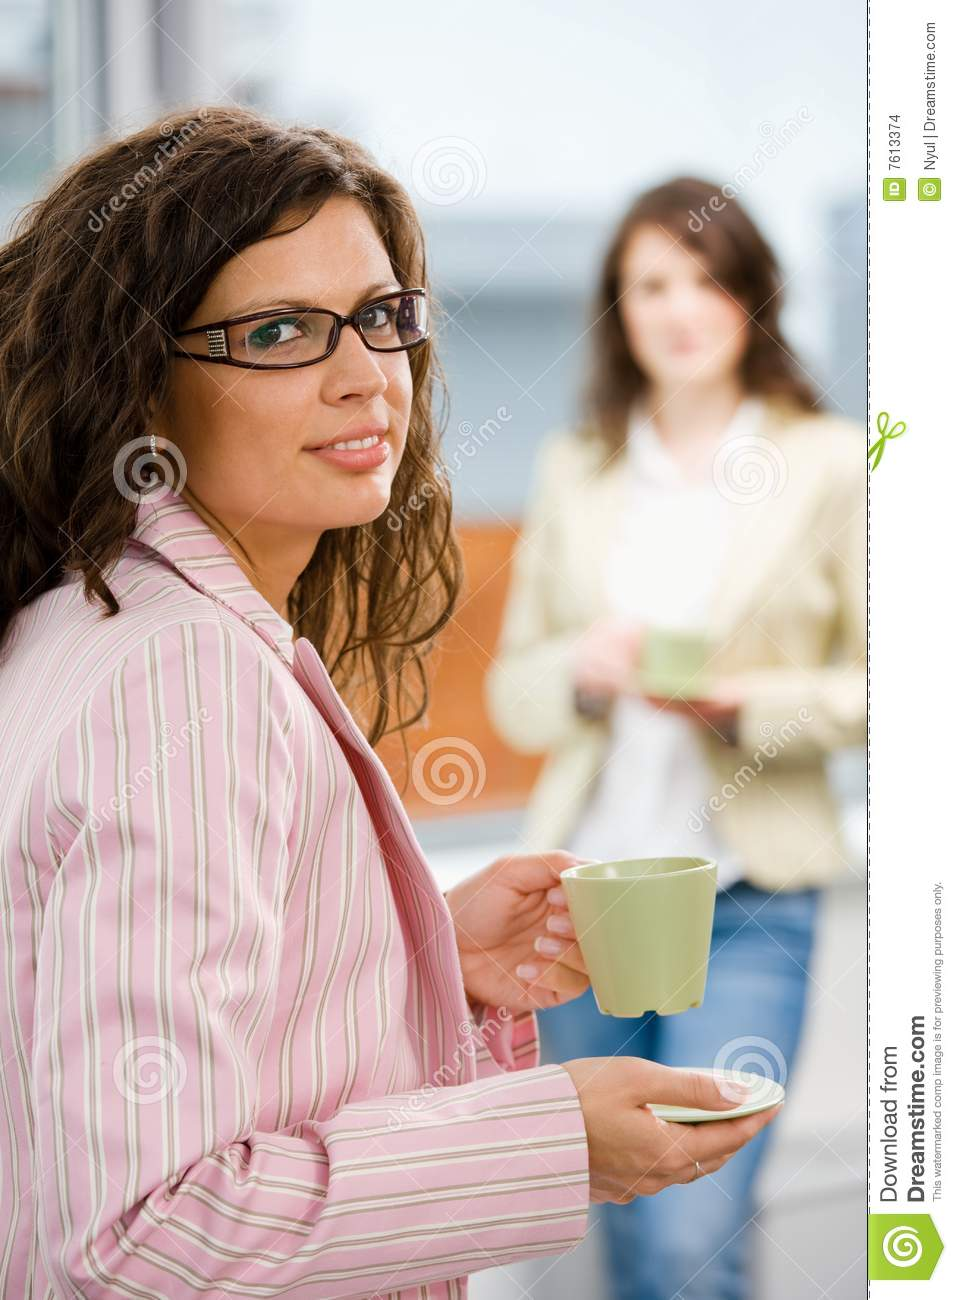 Office Workers Drink Coffee Stock Images - Image: 7613374